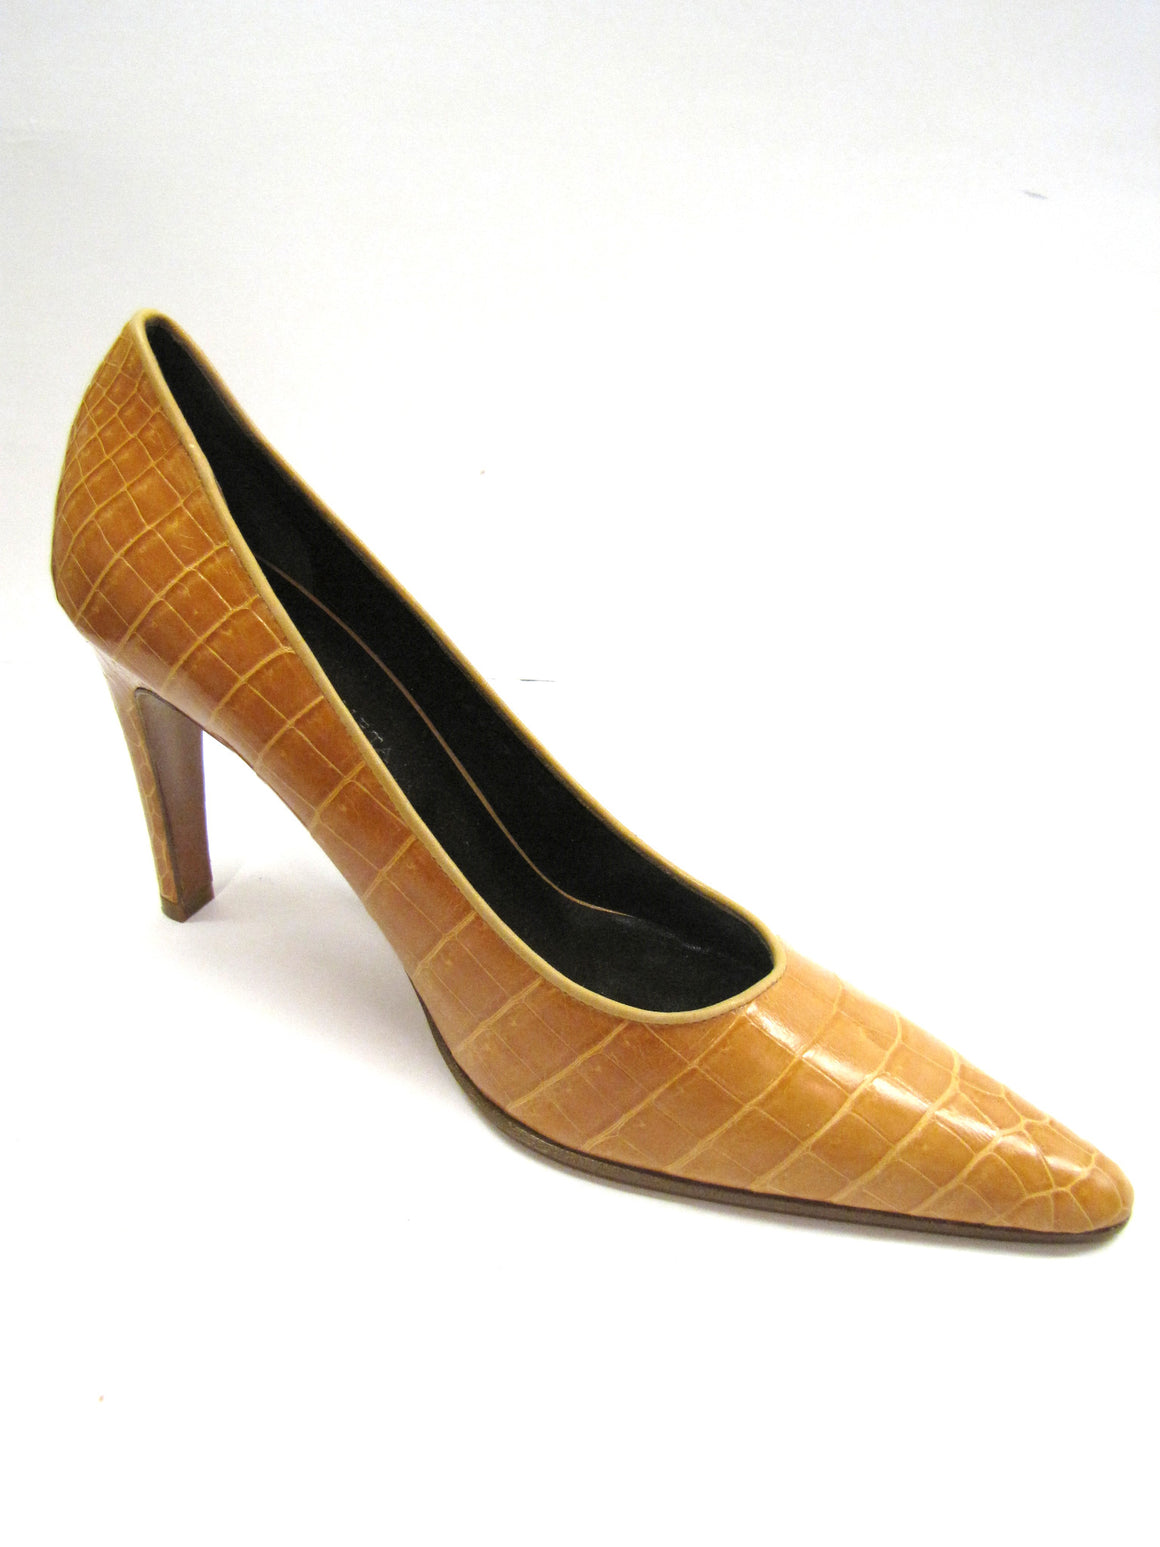 bisbiz.com BOTTEGA VENETA Butterscotch Orange Croc Skin Pointy-Toe Classic Heel Pumps - Bis Luxury Resale